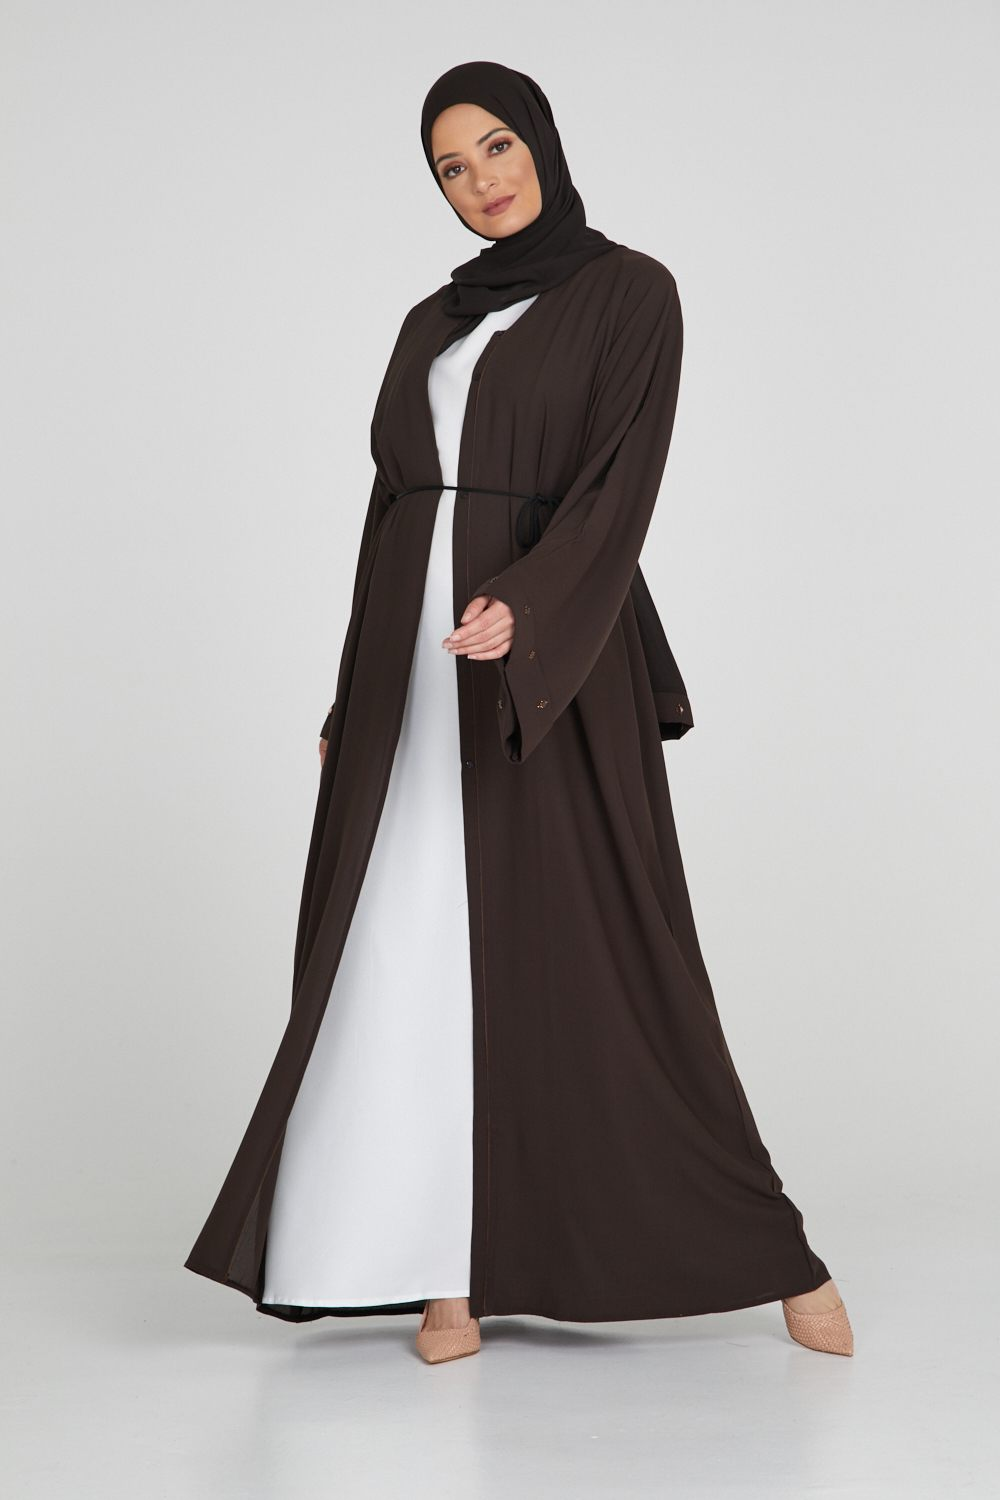 Premium Chocolate Open Abaya with Cuff Gemstone Detailing